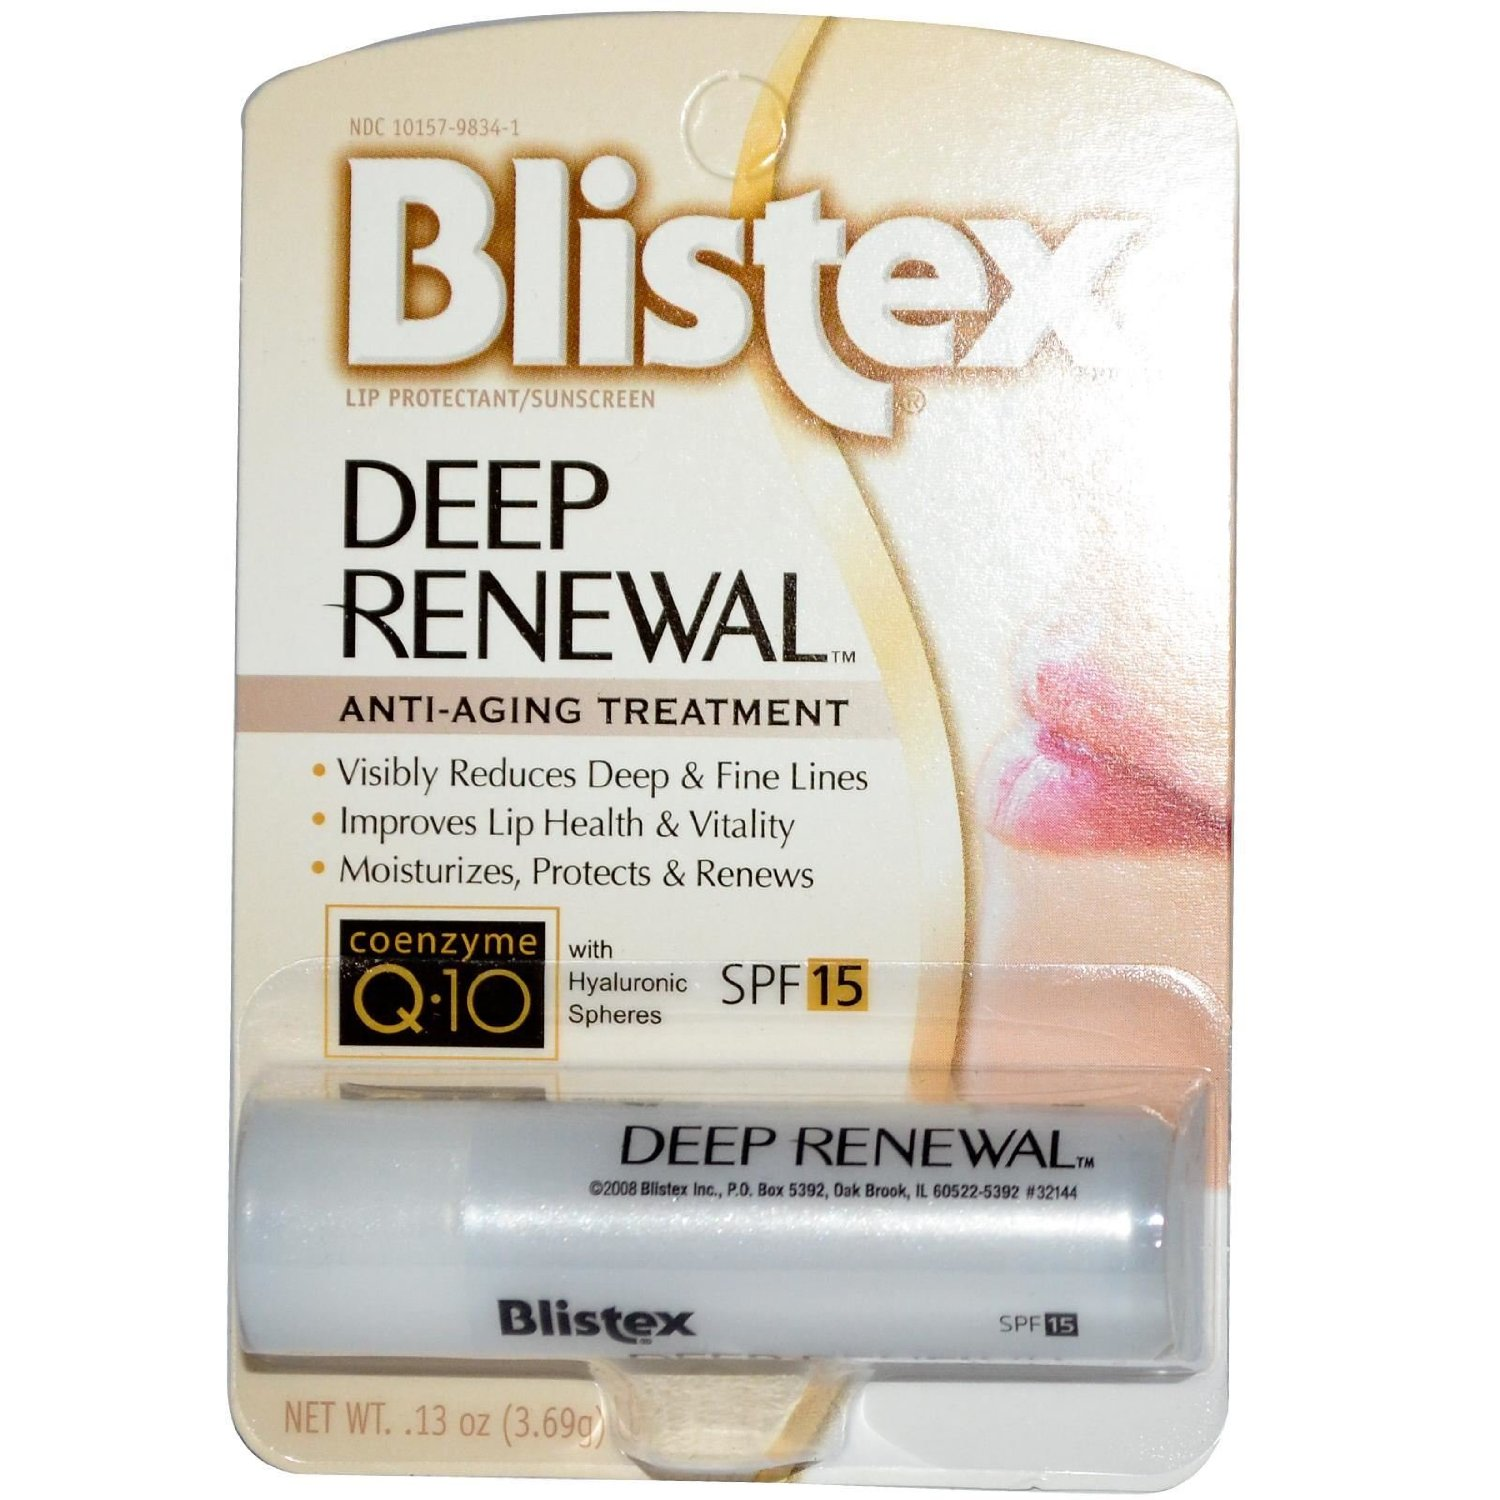 5 Pack Blistex Deep Renewal Lip Protectant, SPF 15 0.15 oz Each